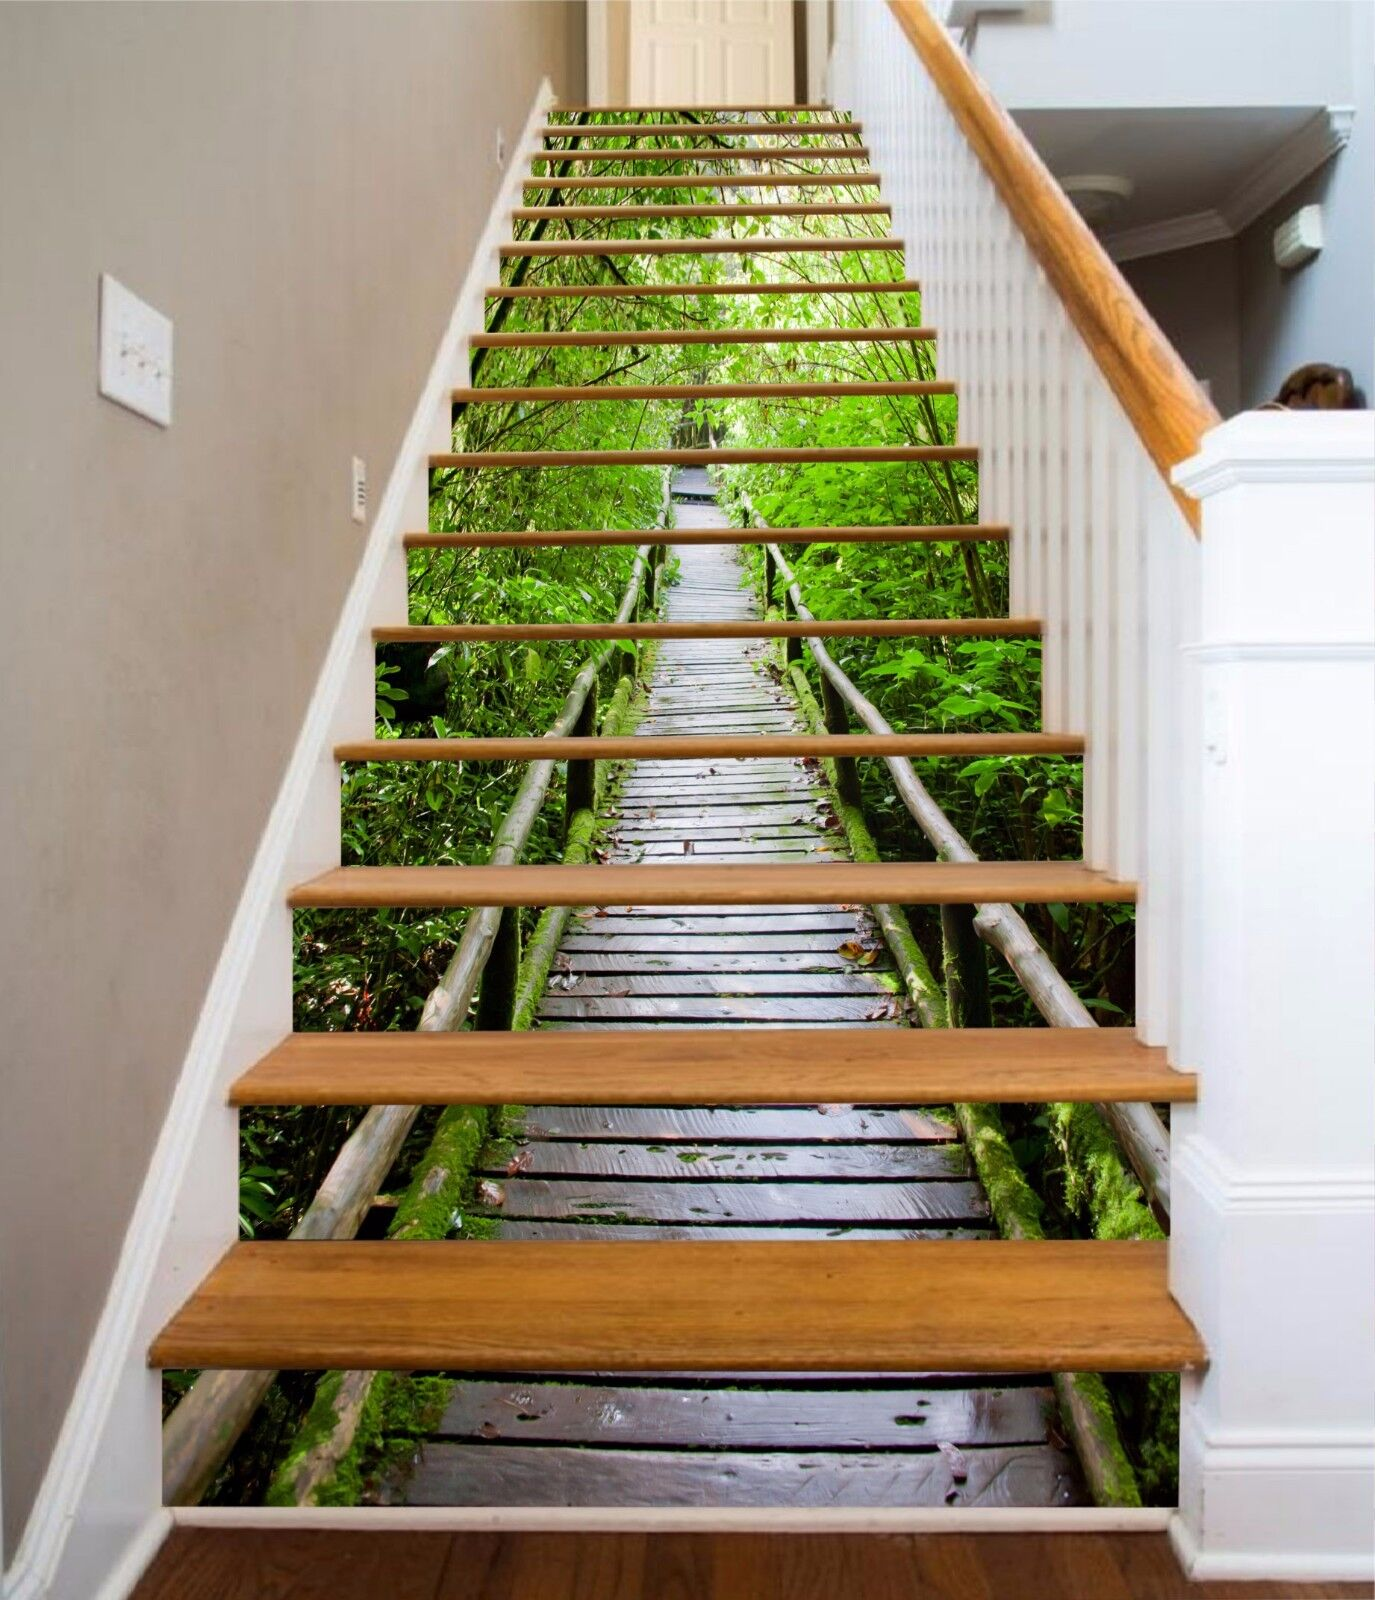 3D Bamboo Road Stair Risers Decoration Photo Mural Vinyl Decal Wallpaper AU